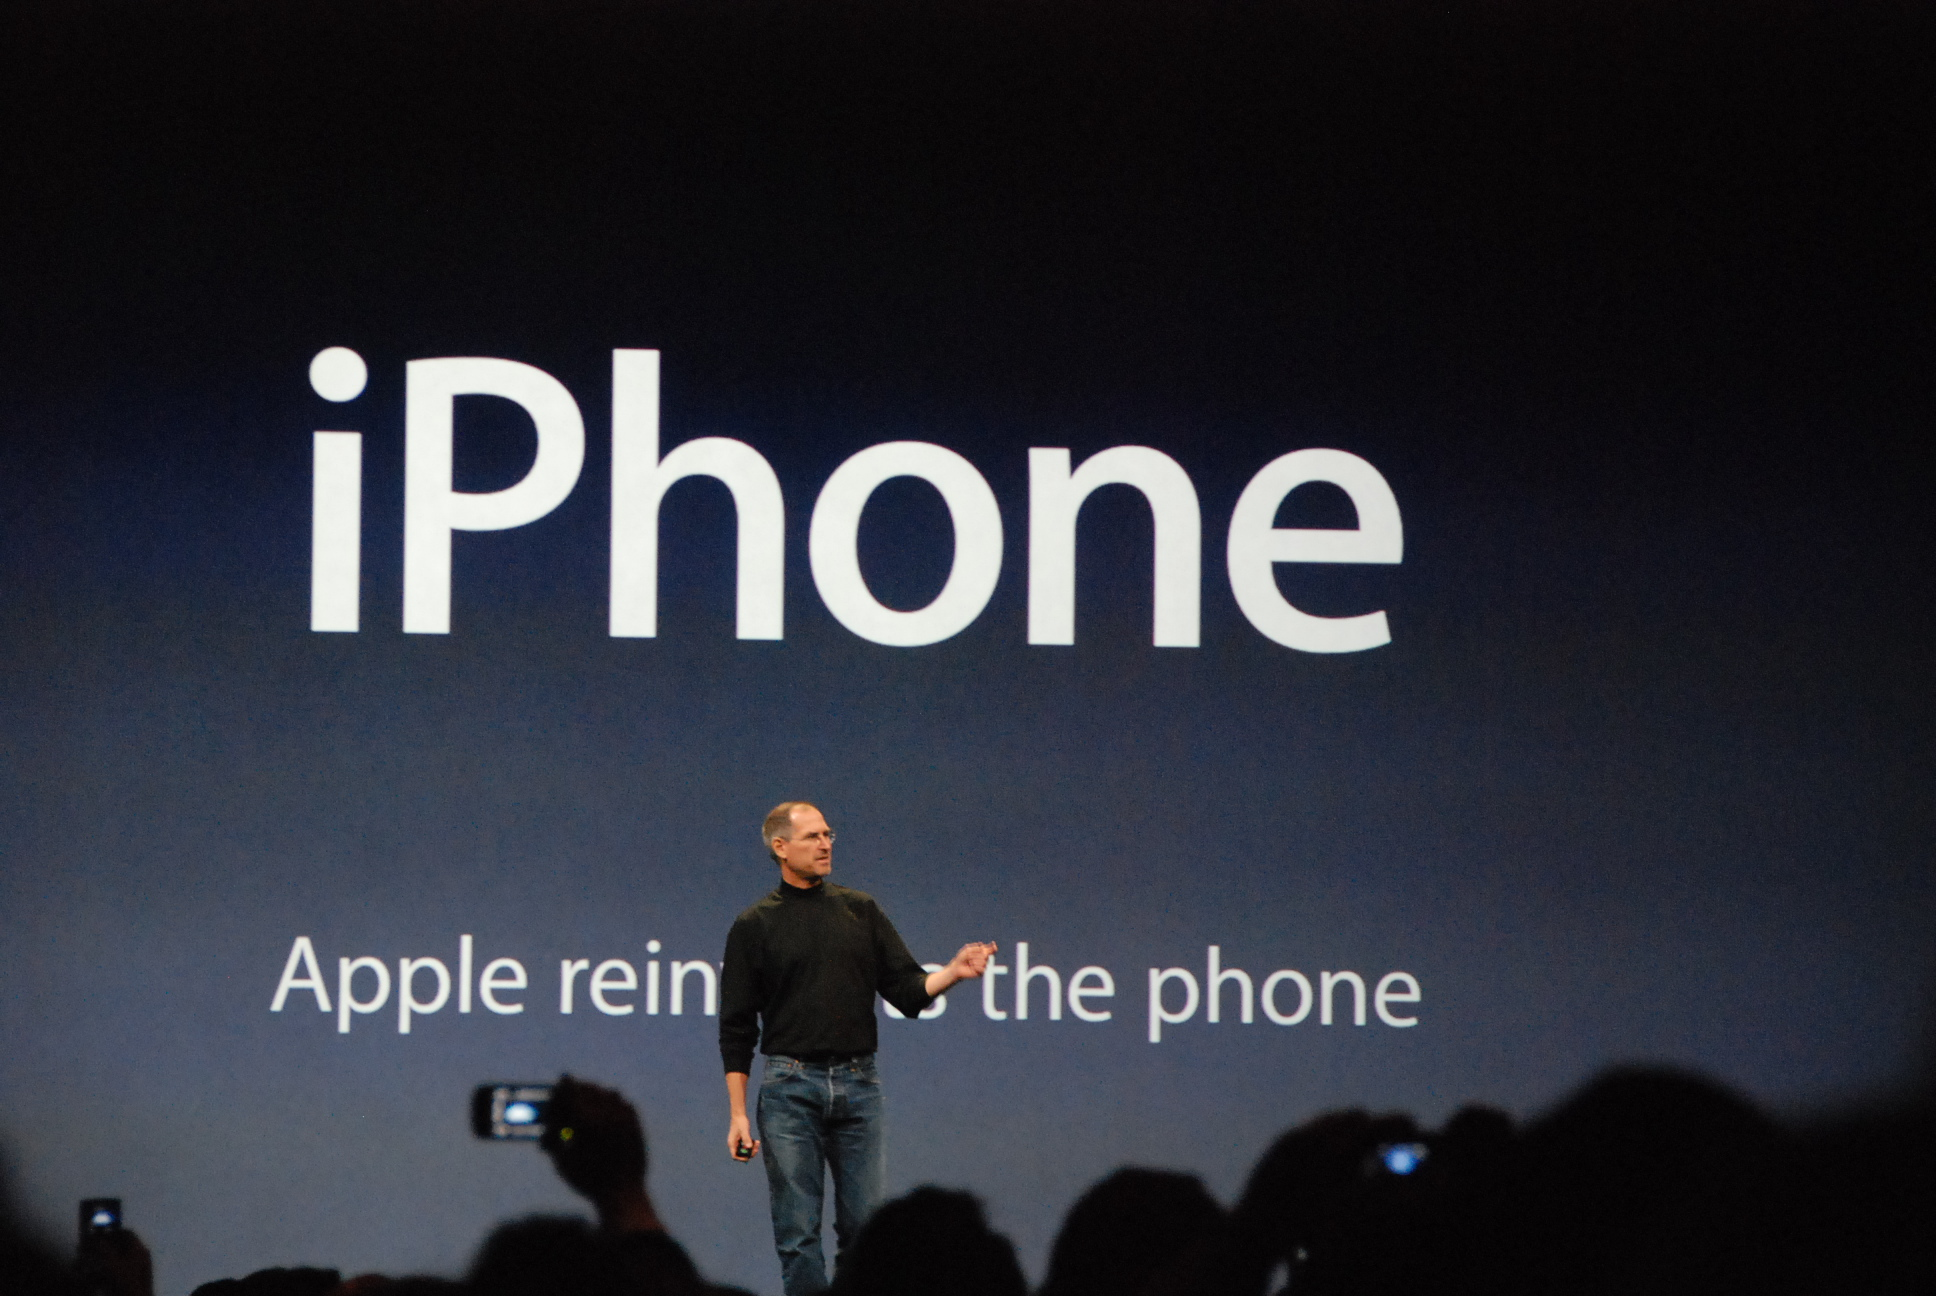 http://upload.wikimedia.org/wikipedia/commons/c/c2/Steve_Jobs_presents_iPhone.jpg